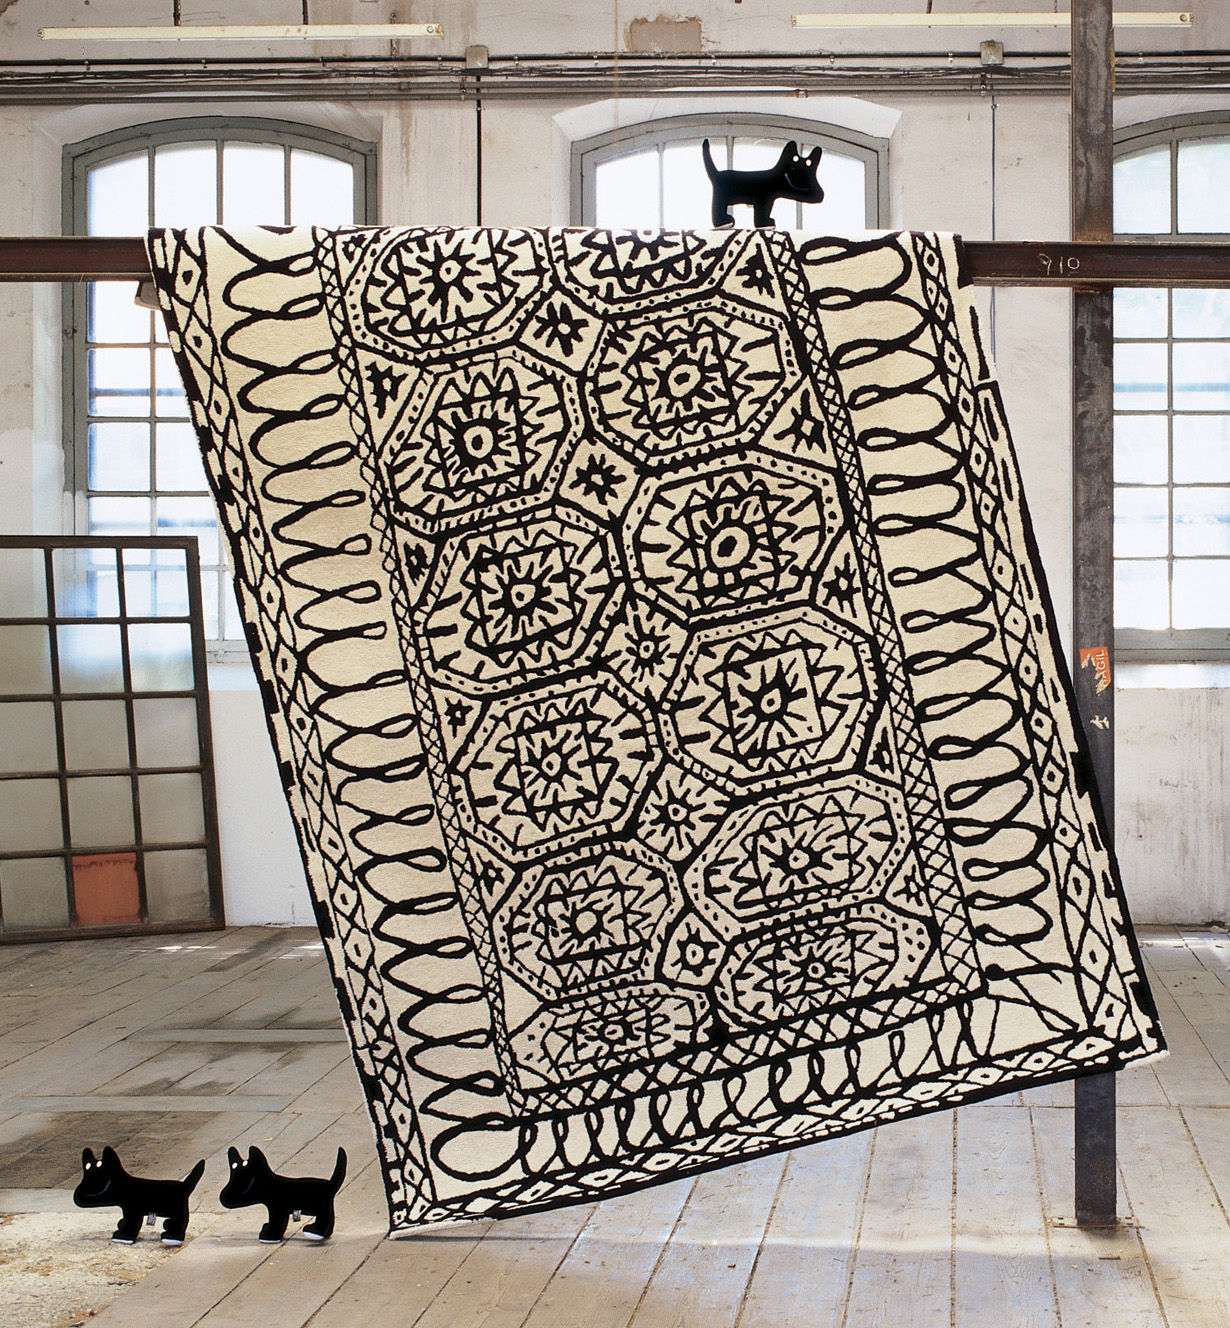 Furniture - Carpets - Black on white - Estambul Rug by Nanimarquina - 170 x 255 cm - Black and White - Wool